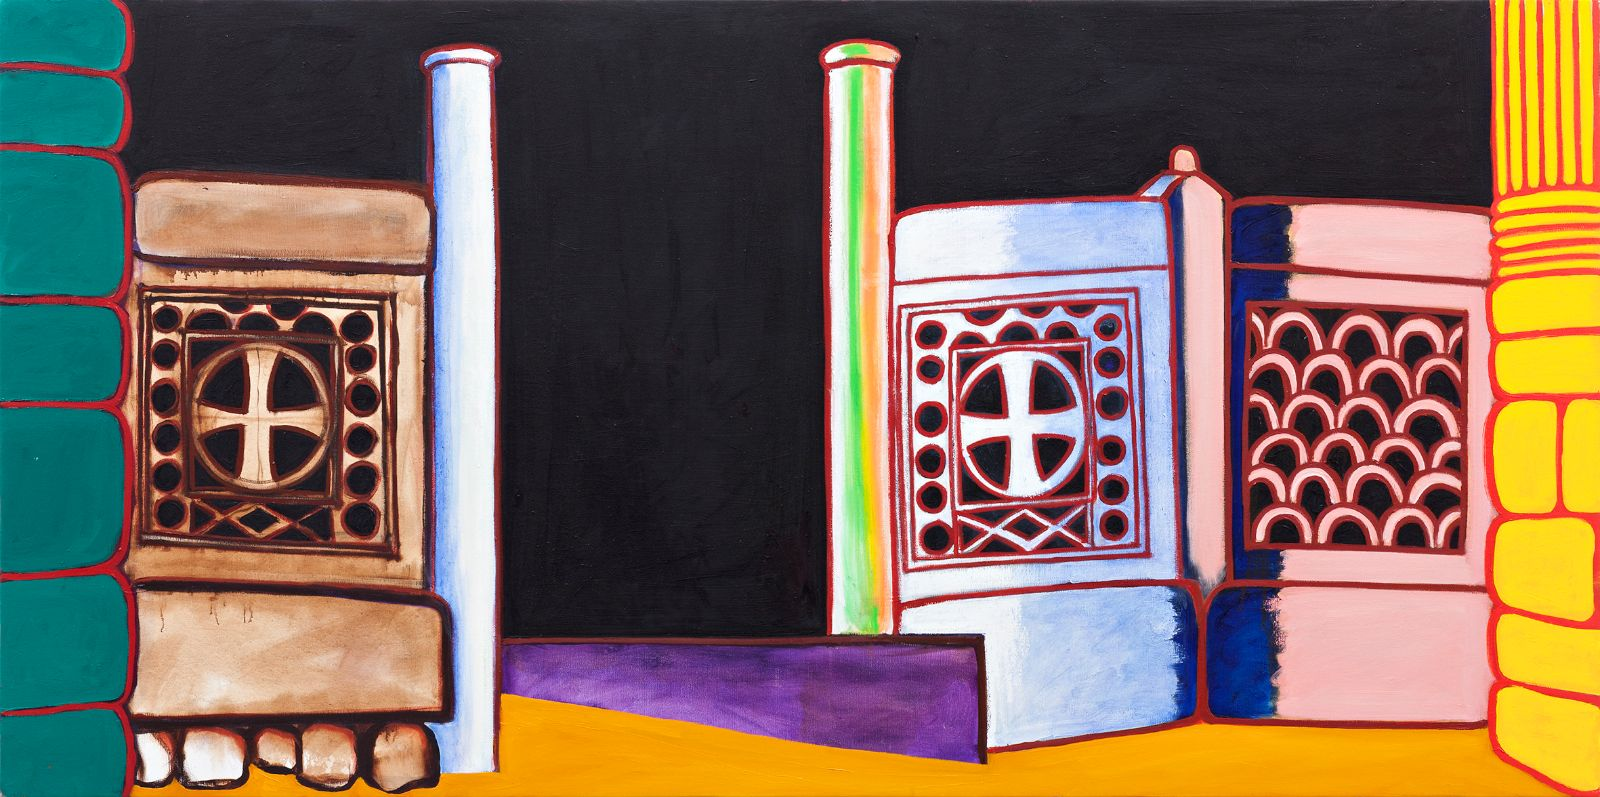 Olympia 4, 2012-2013, oil on canvas, 104 x 208 cm